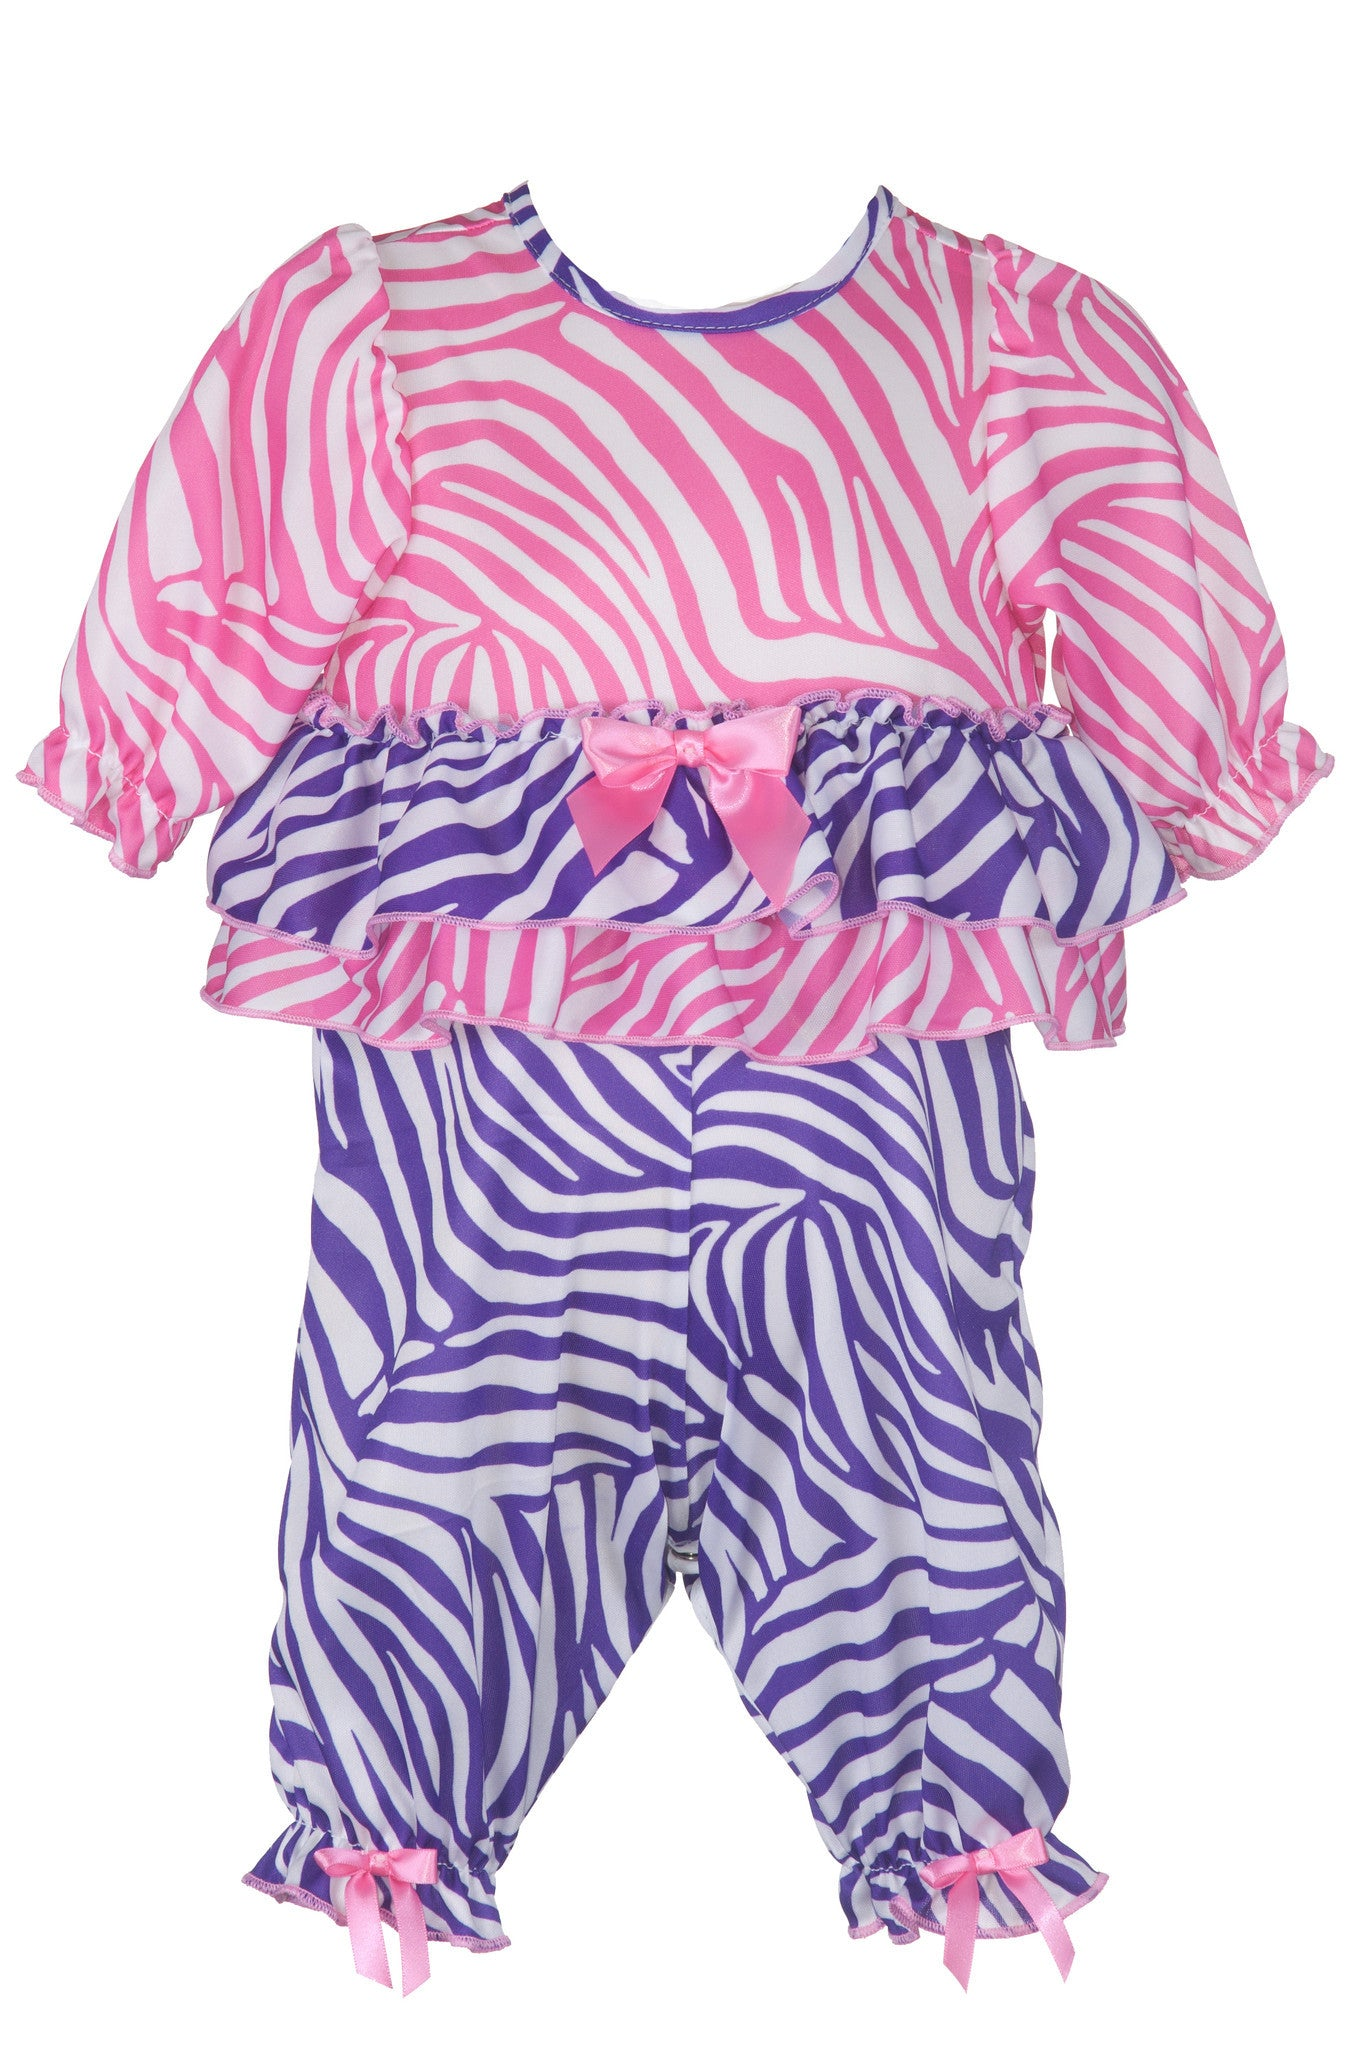 Laura Dare Slumber Party Zebra Ruffled Jumpsuit